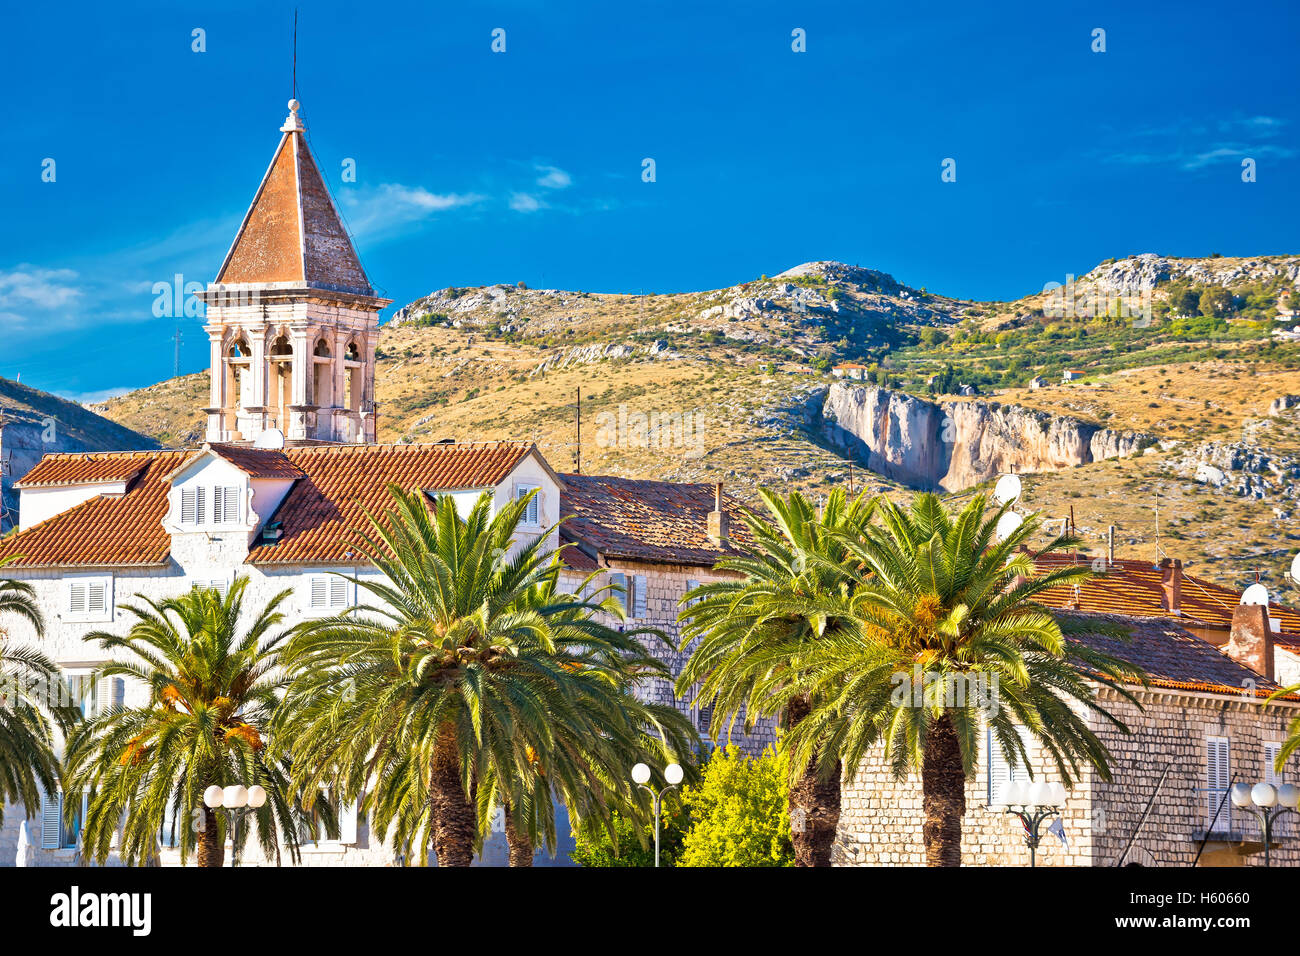 Trogir landmarks and mountain cliffs background, UNESCO town in Croatia - Stock Image